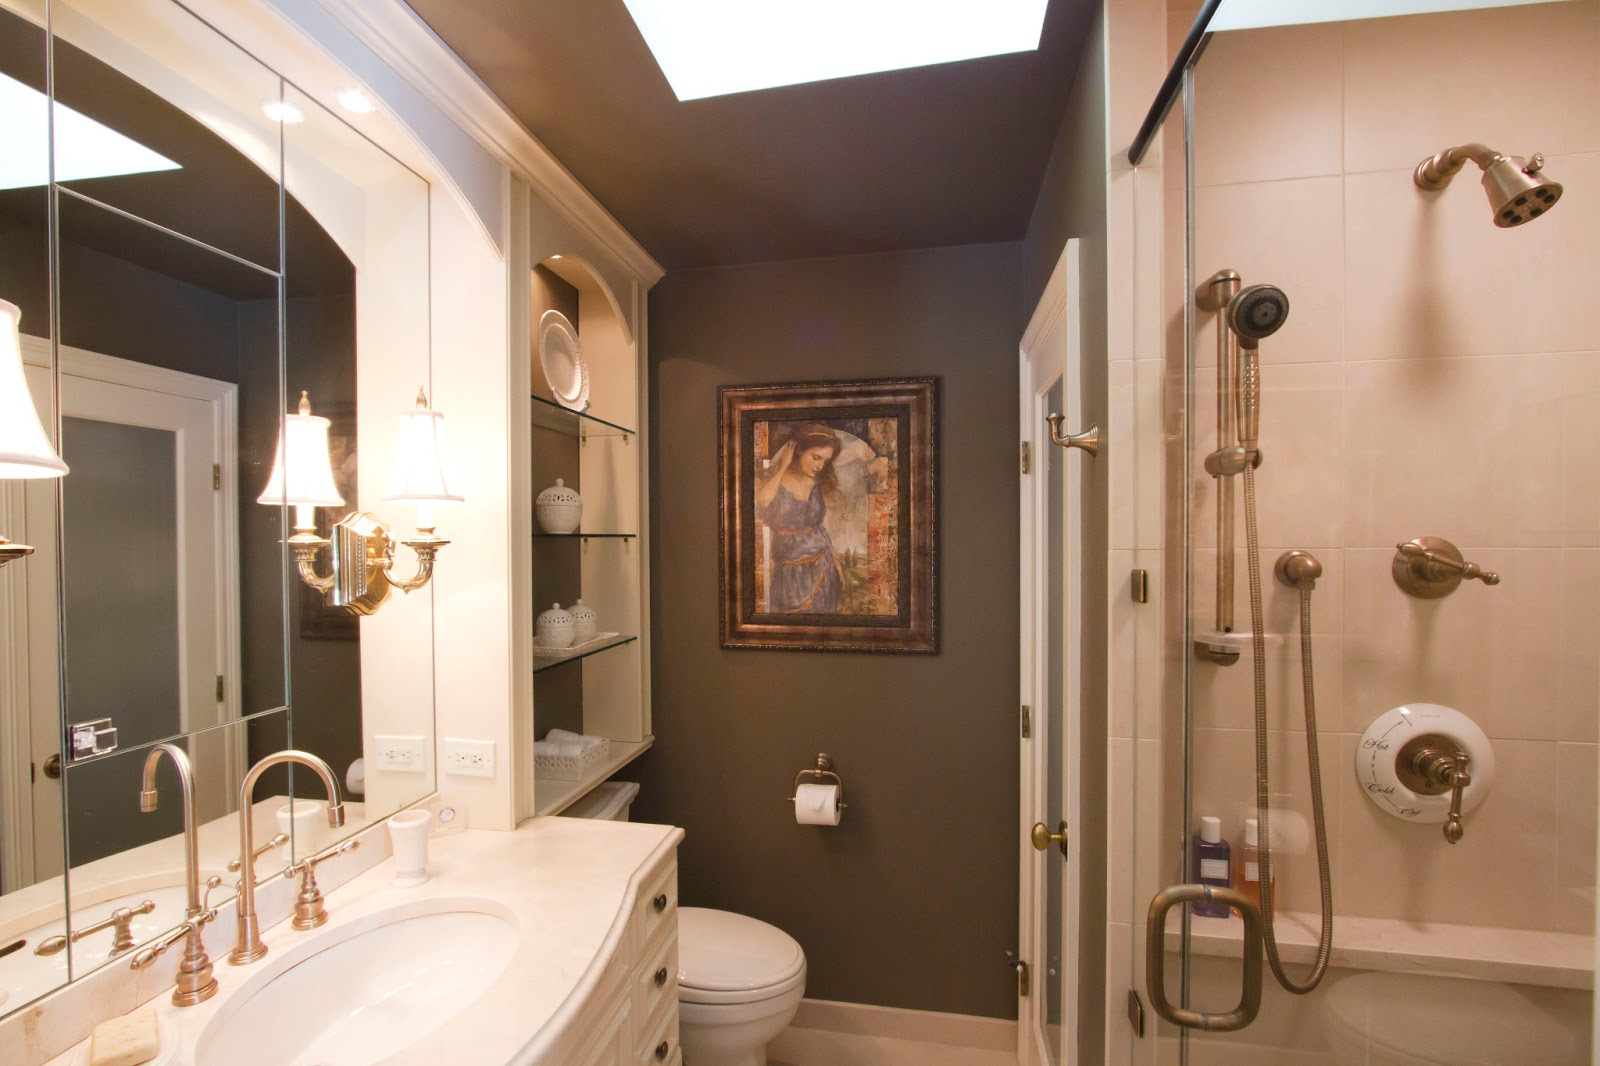 Small bathroom remodel here are things to consider - Pictures of remodeled small bathrooms ...